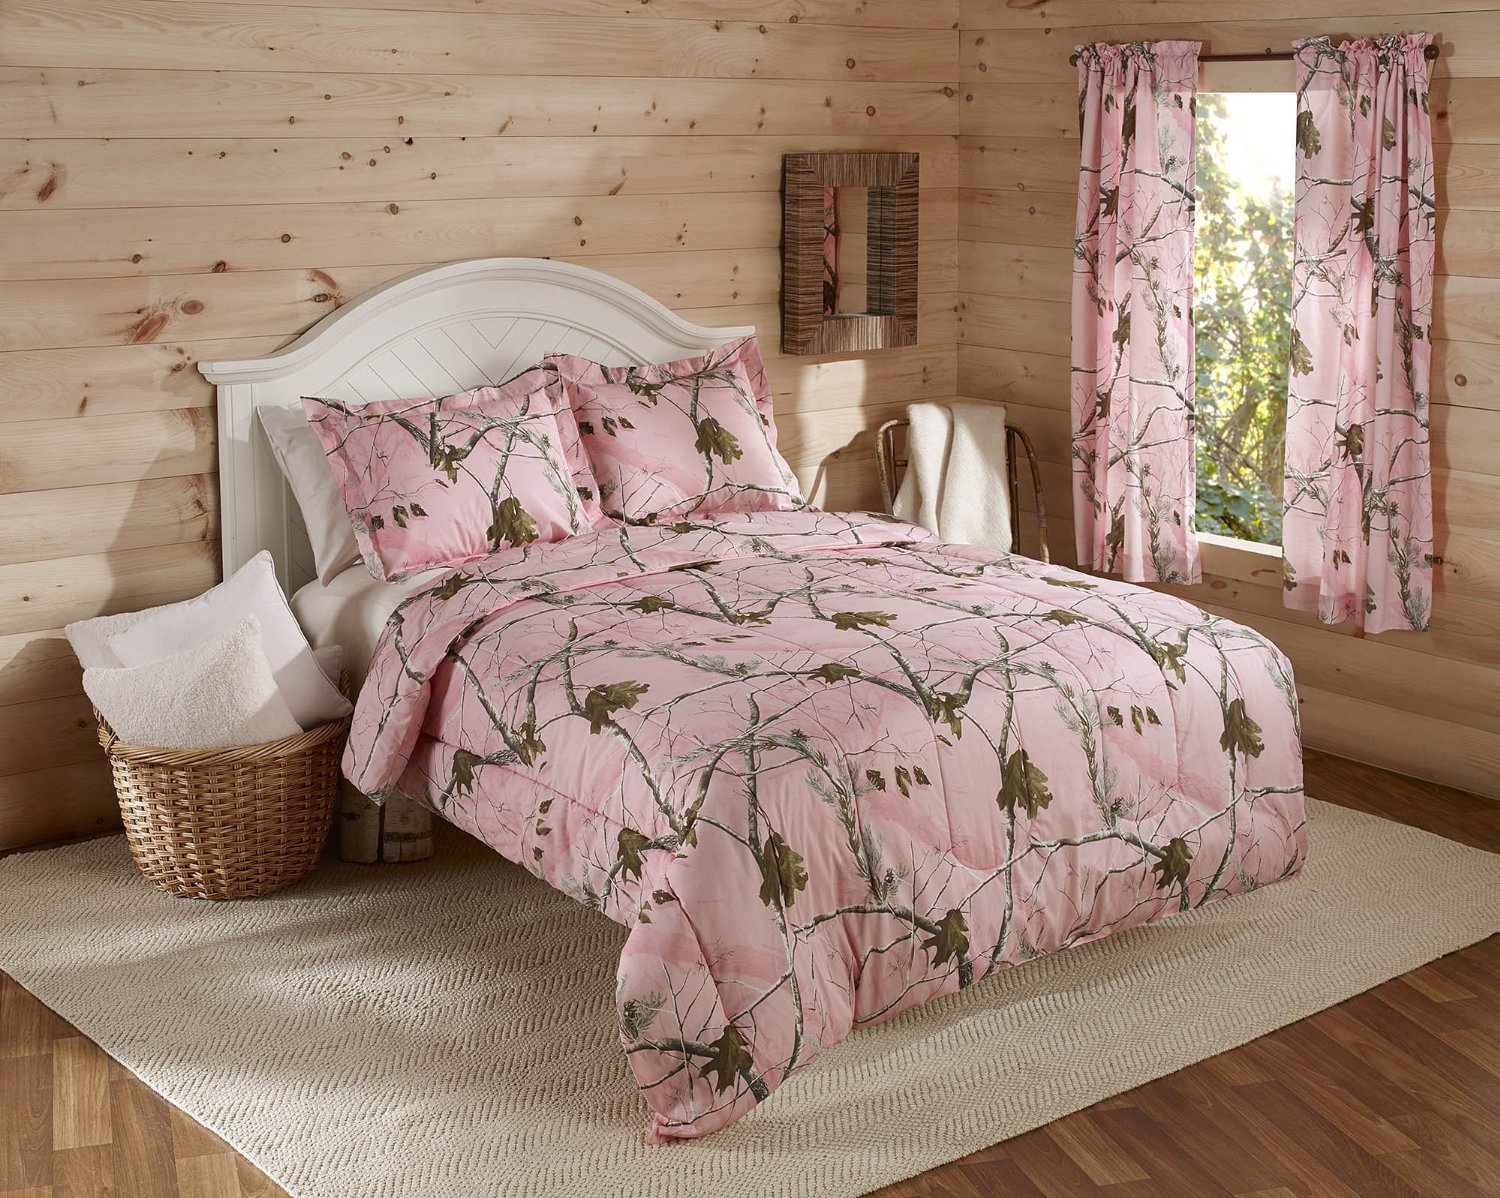 Pink Camo Camouflage Comforters And Bedding For Girls Amp Teens